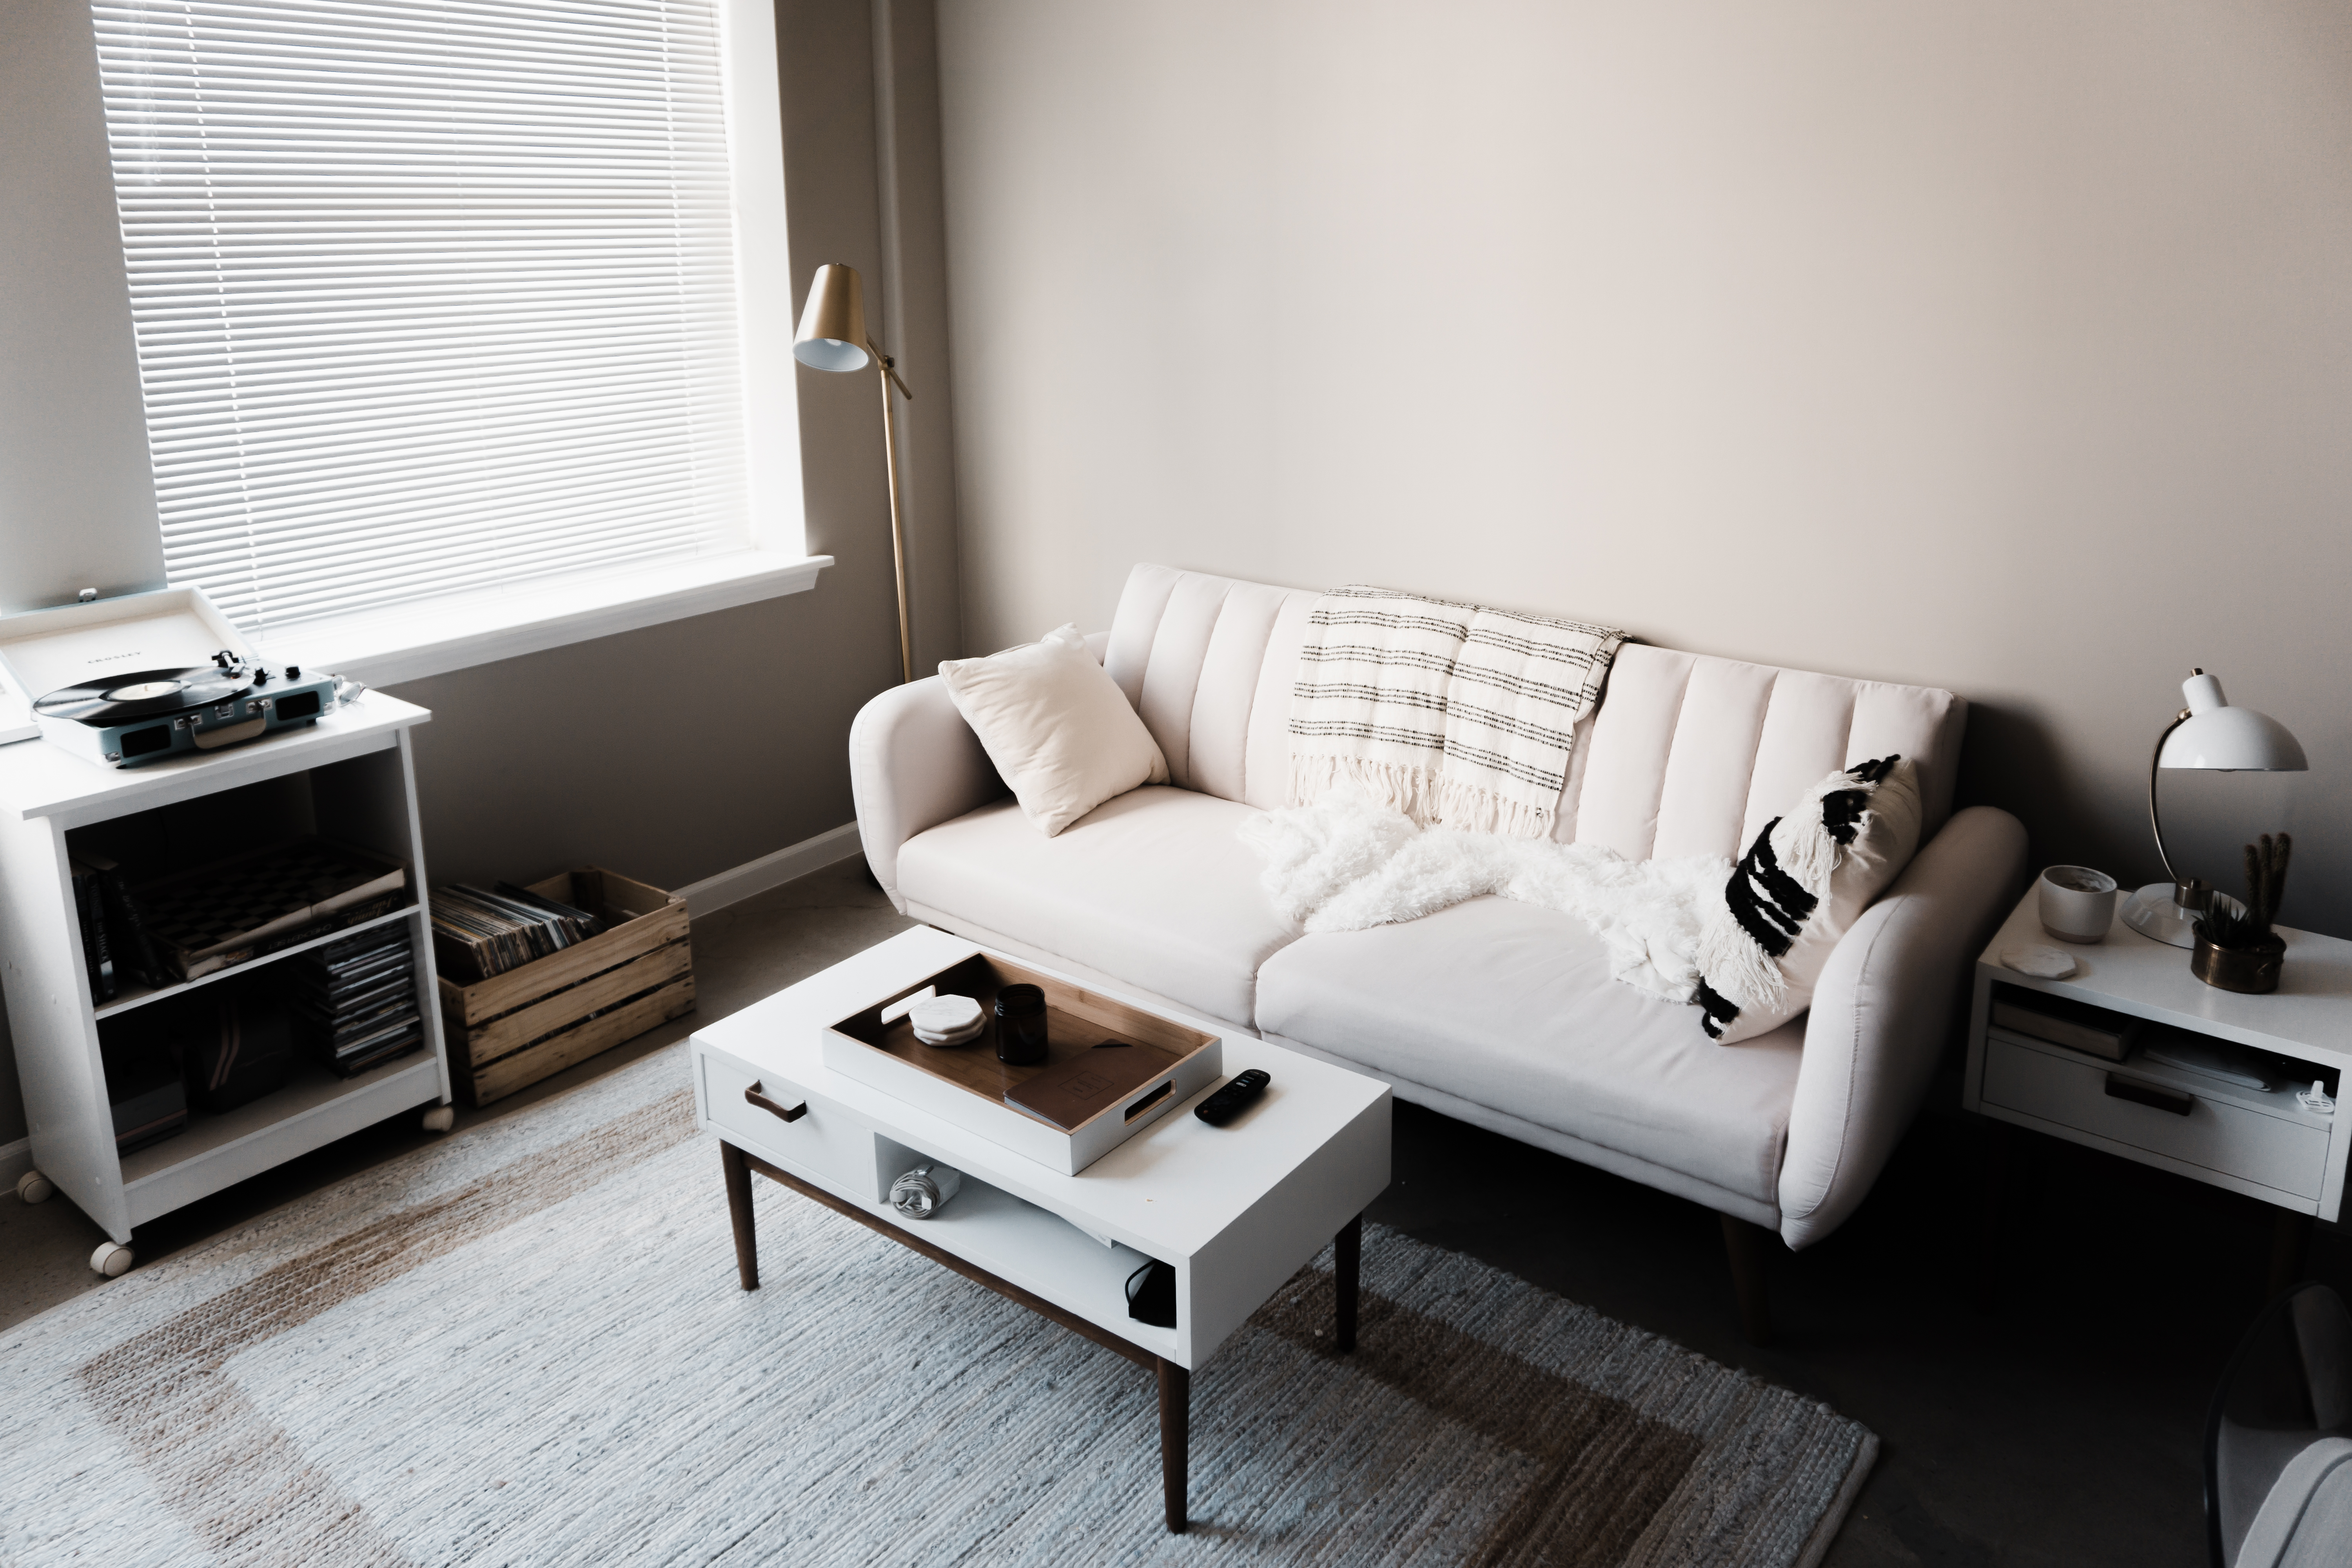 Living room interior of home with white sofa coffee table turn table and